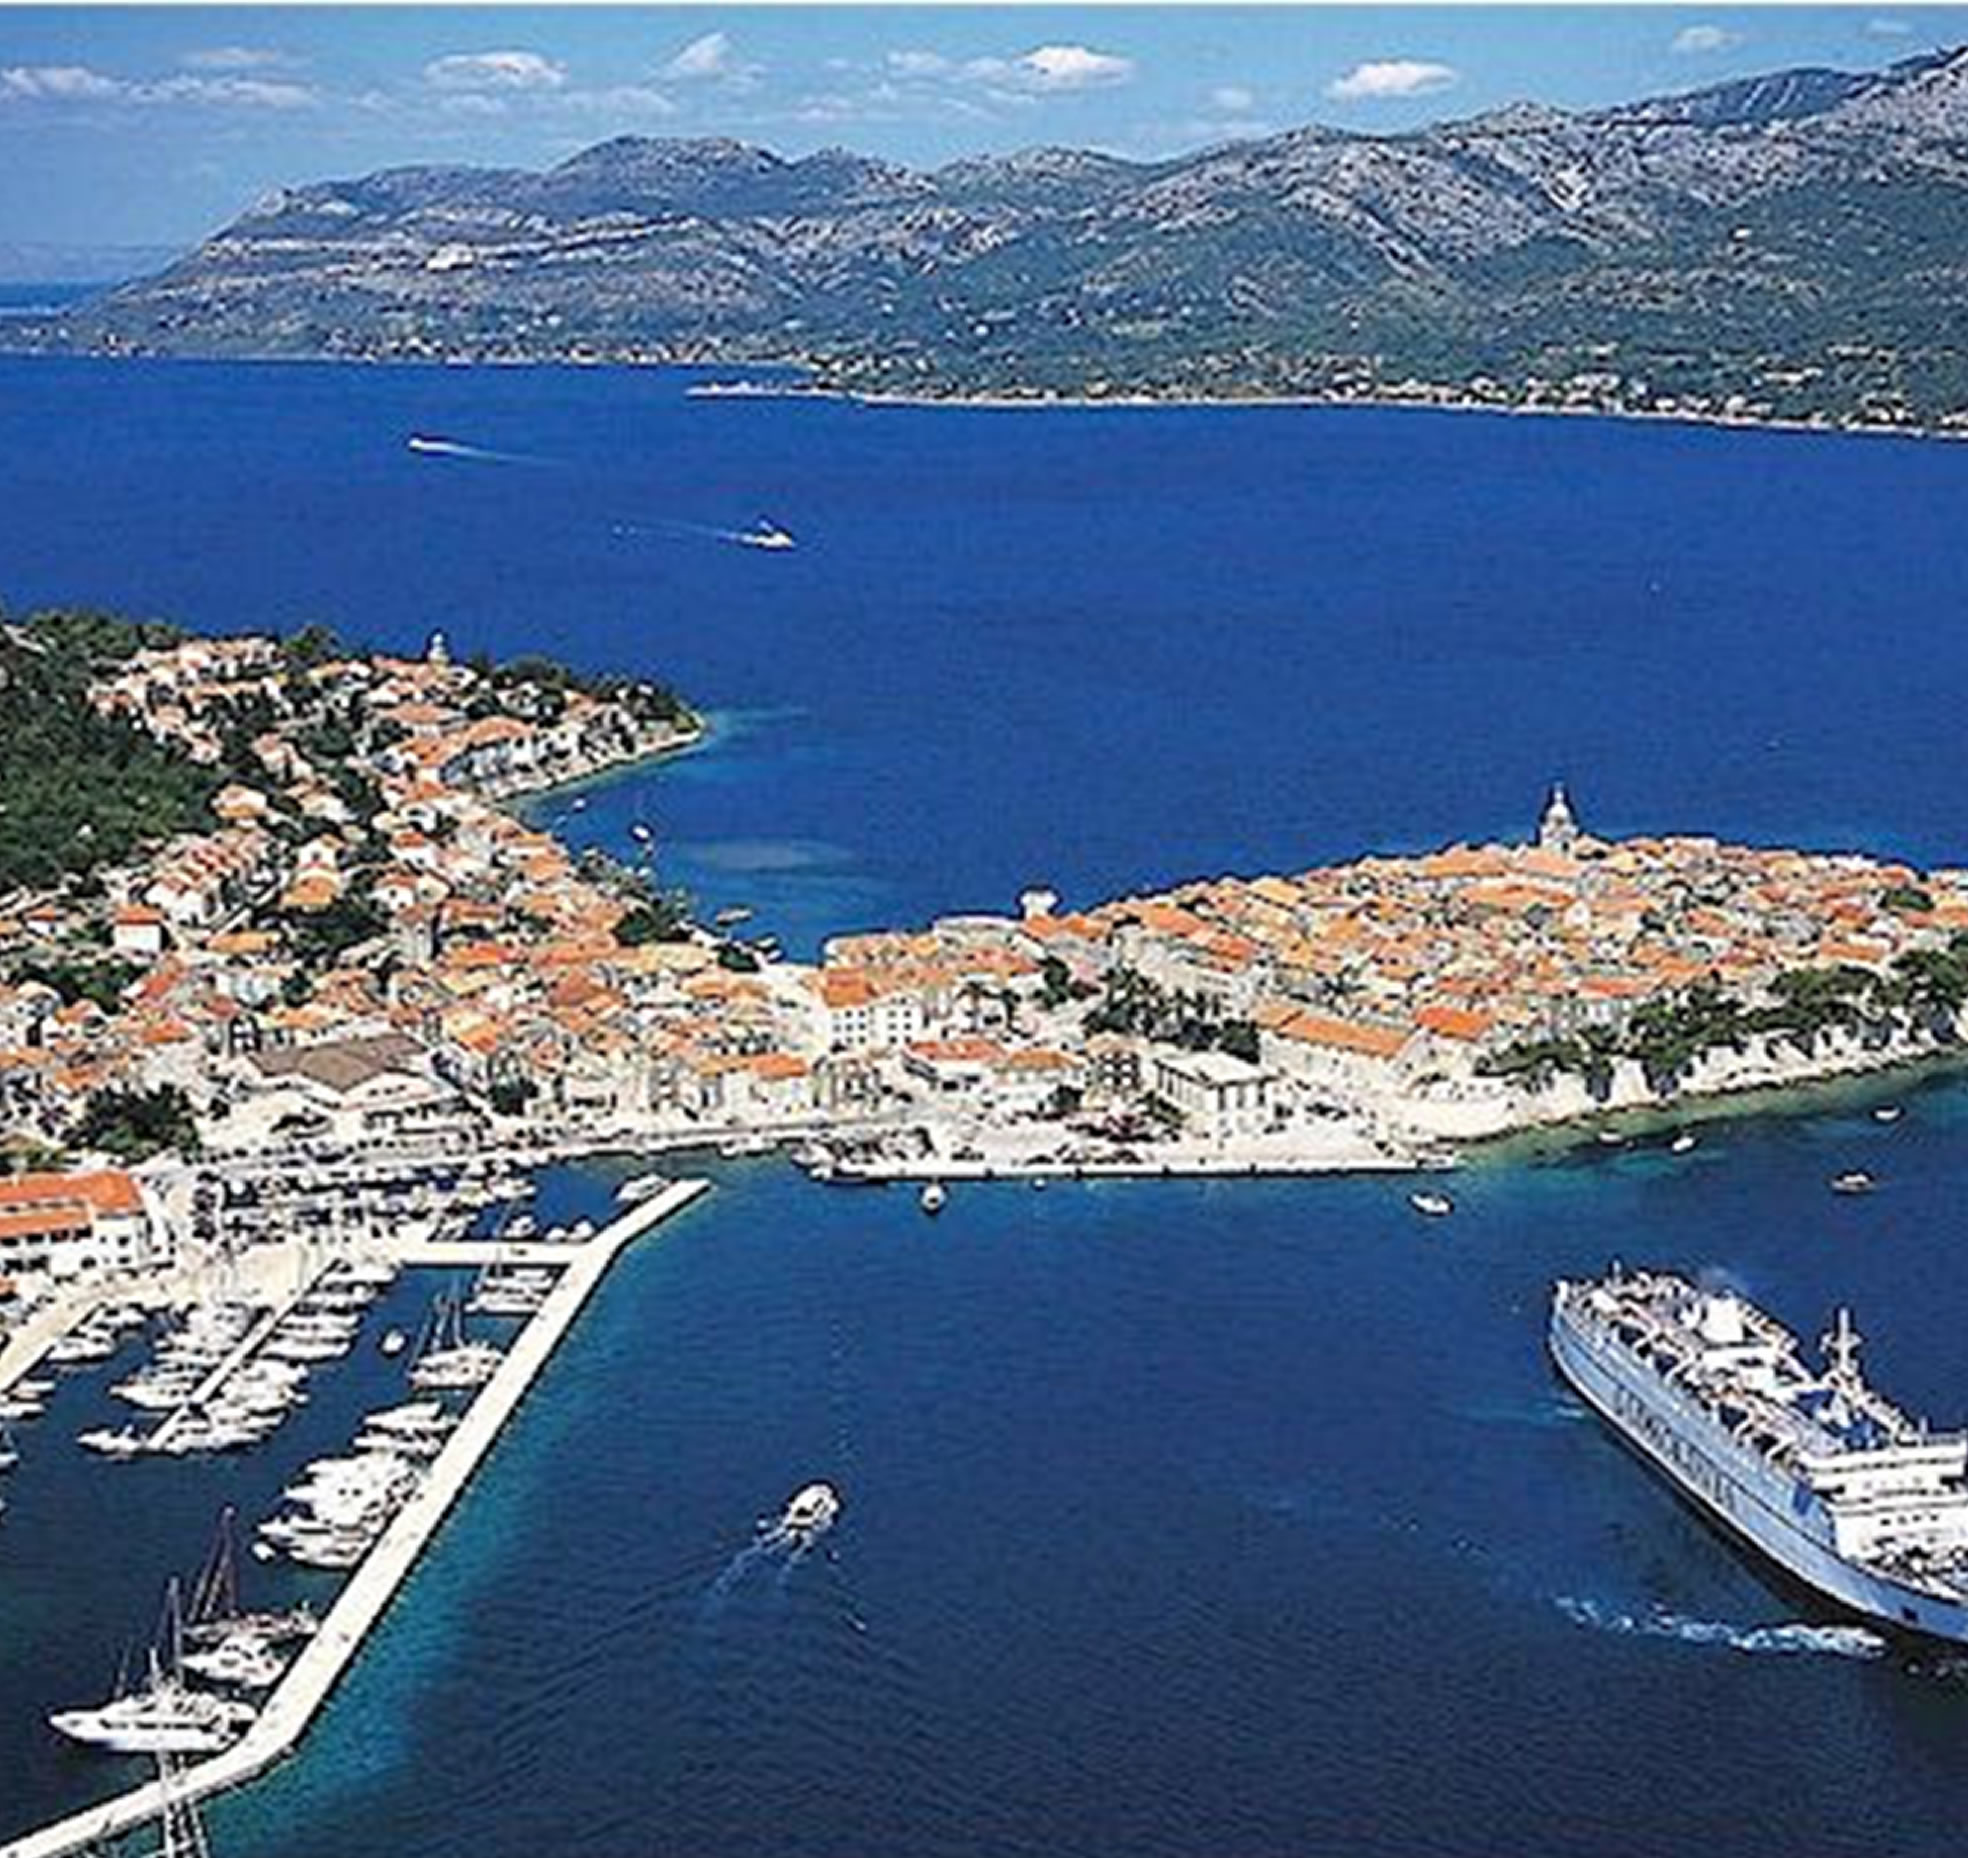 Multitenant business spaces in the City of Korcula